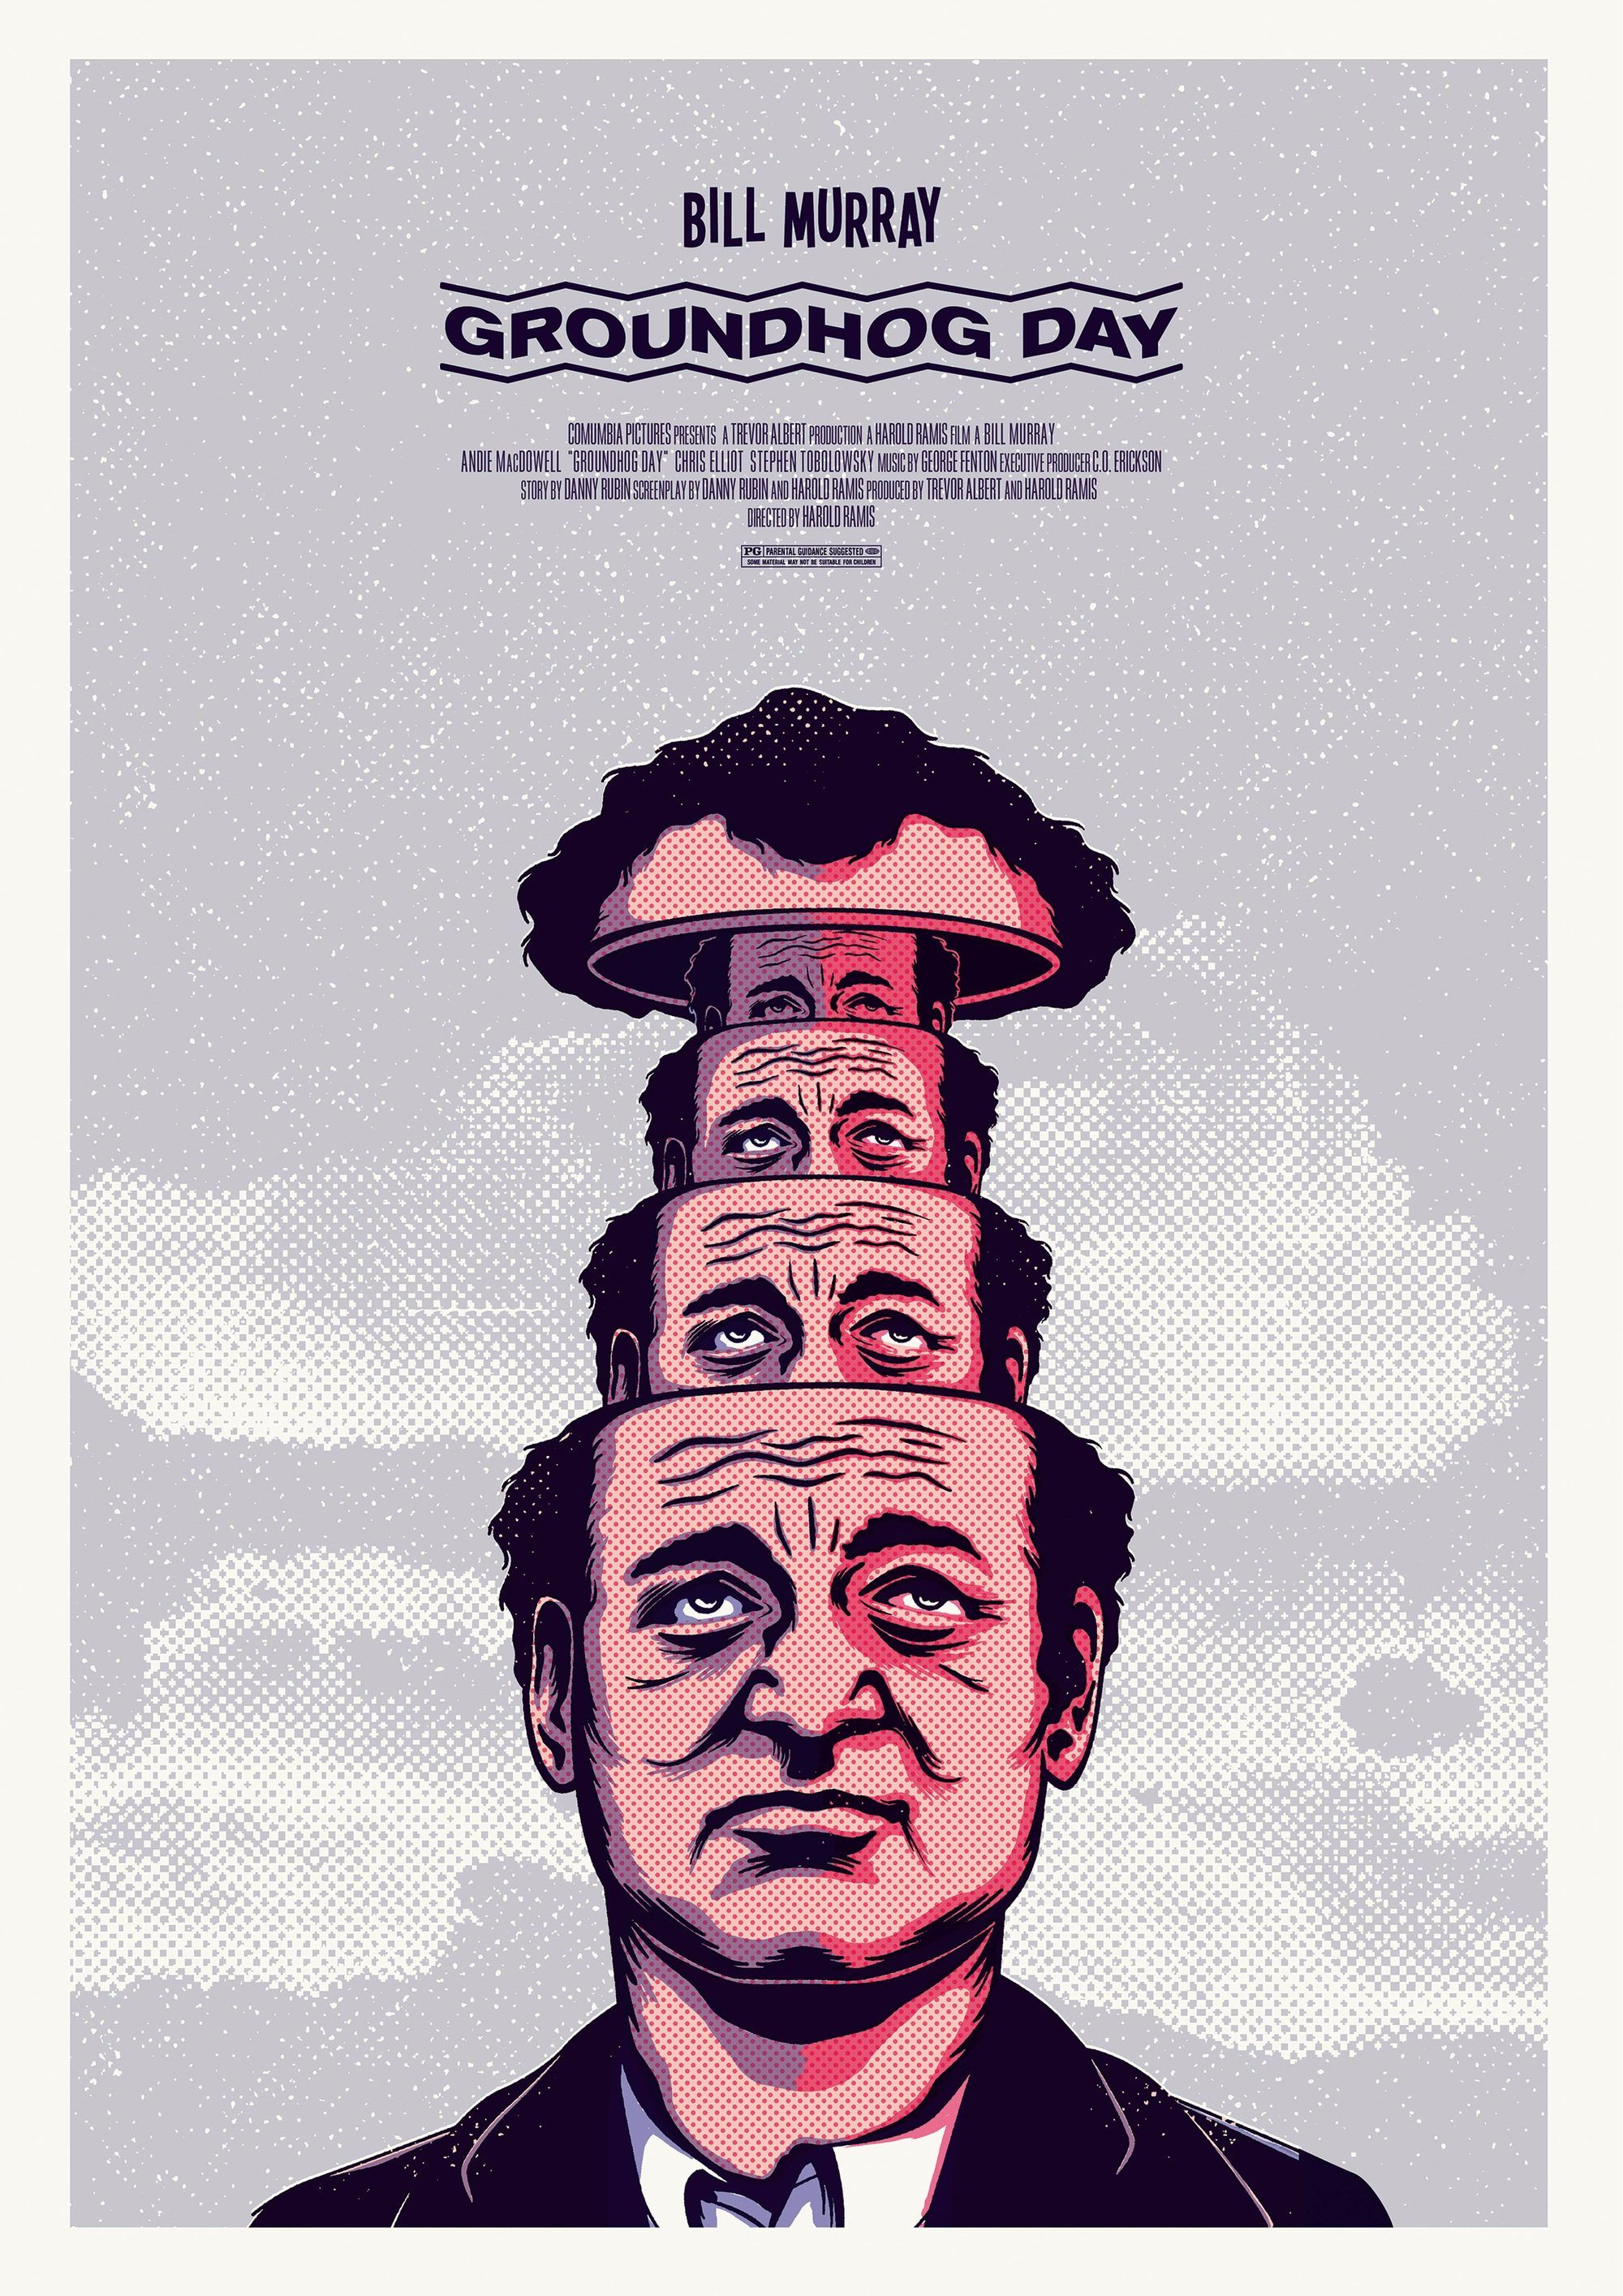 Groundhog Day with Bill Murray